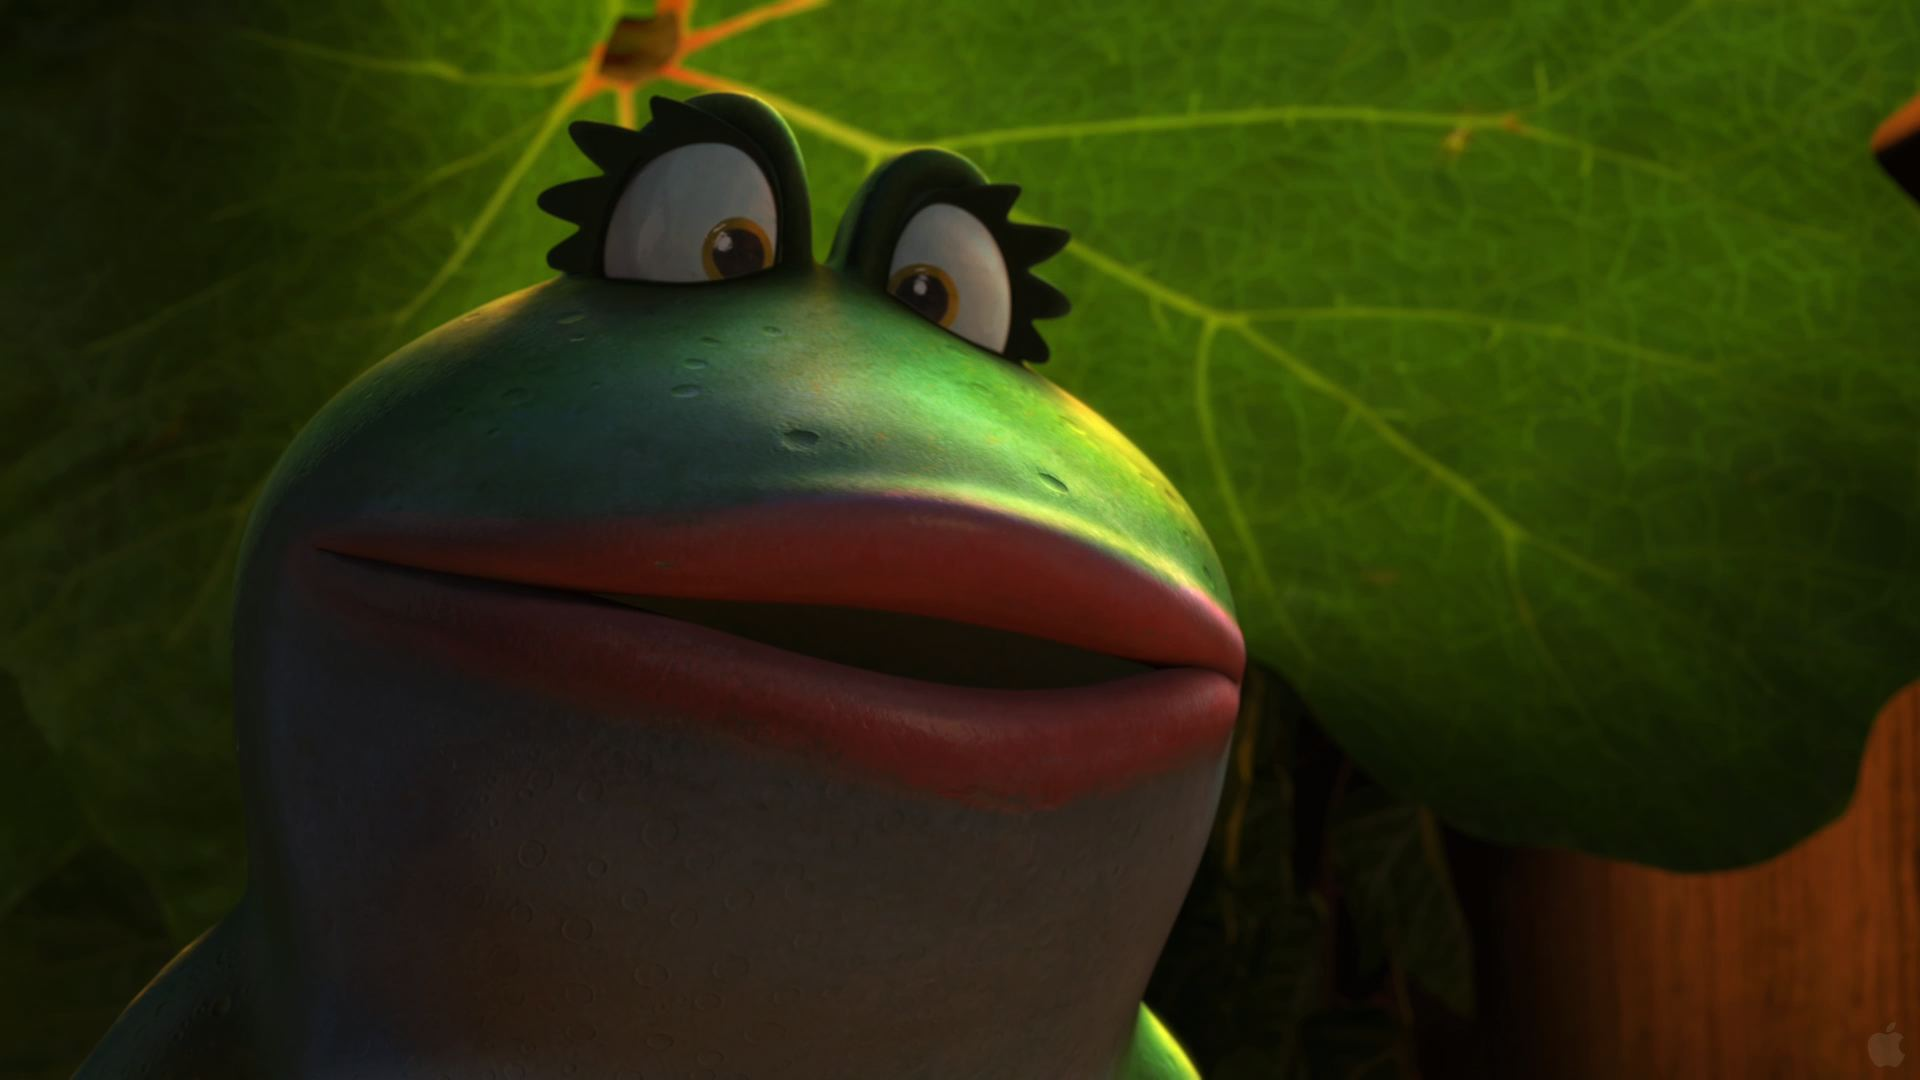 nanette the frog from gnomeo and juliet movie desktop wallpaper